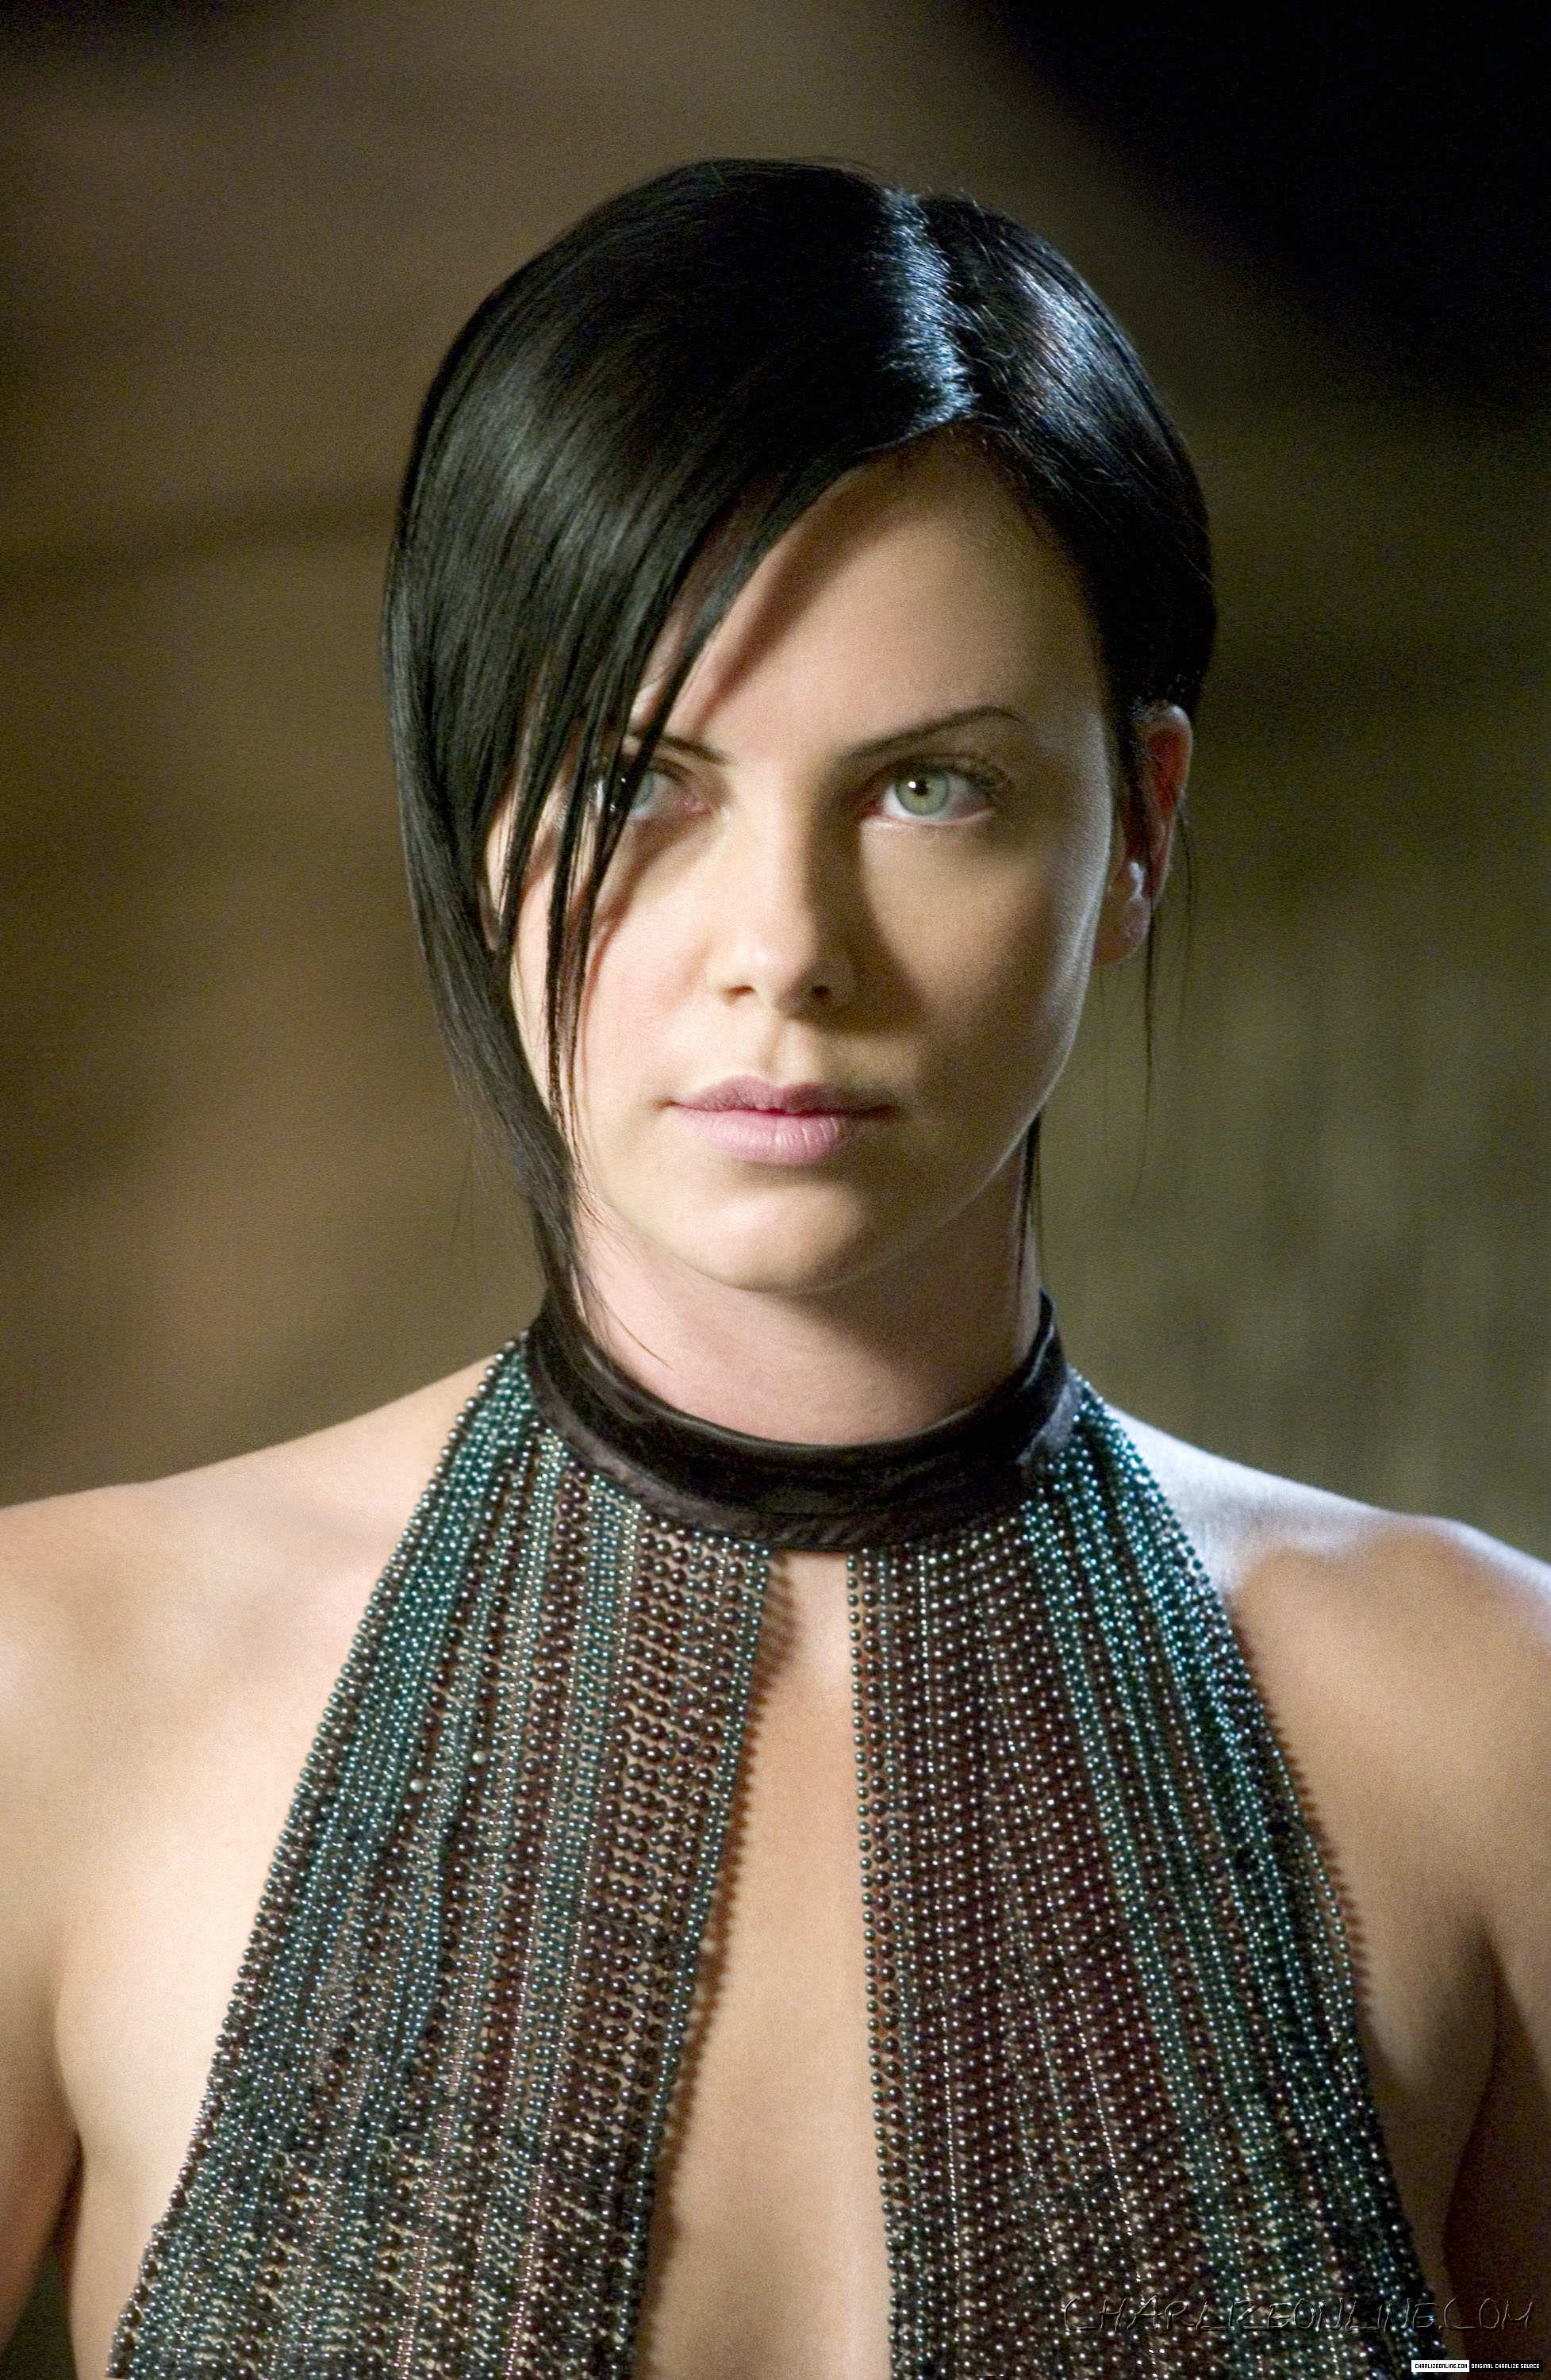 Pictures Of Aeon Flux Charlize Theron Haircut Kidskunstfo